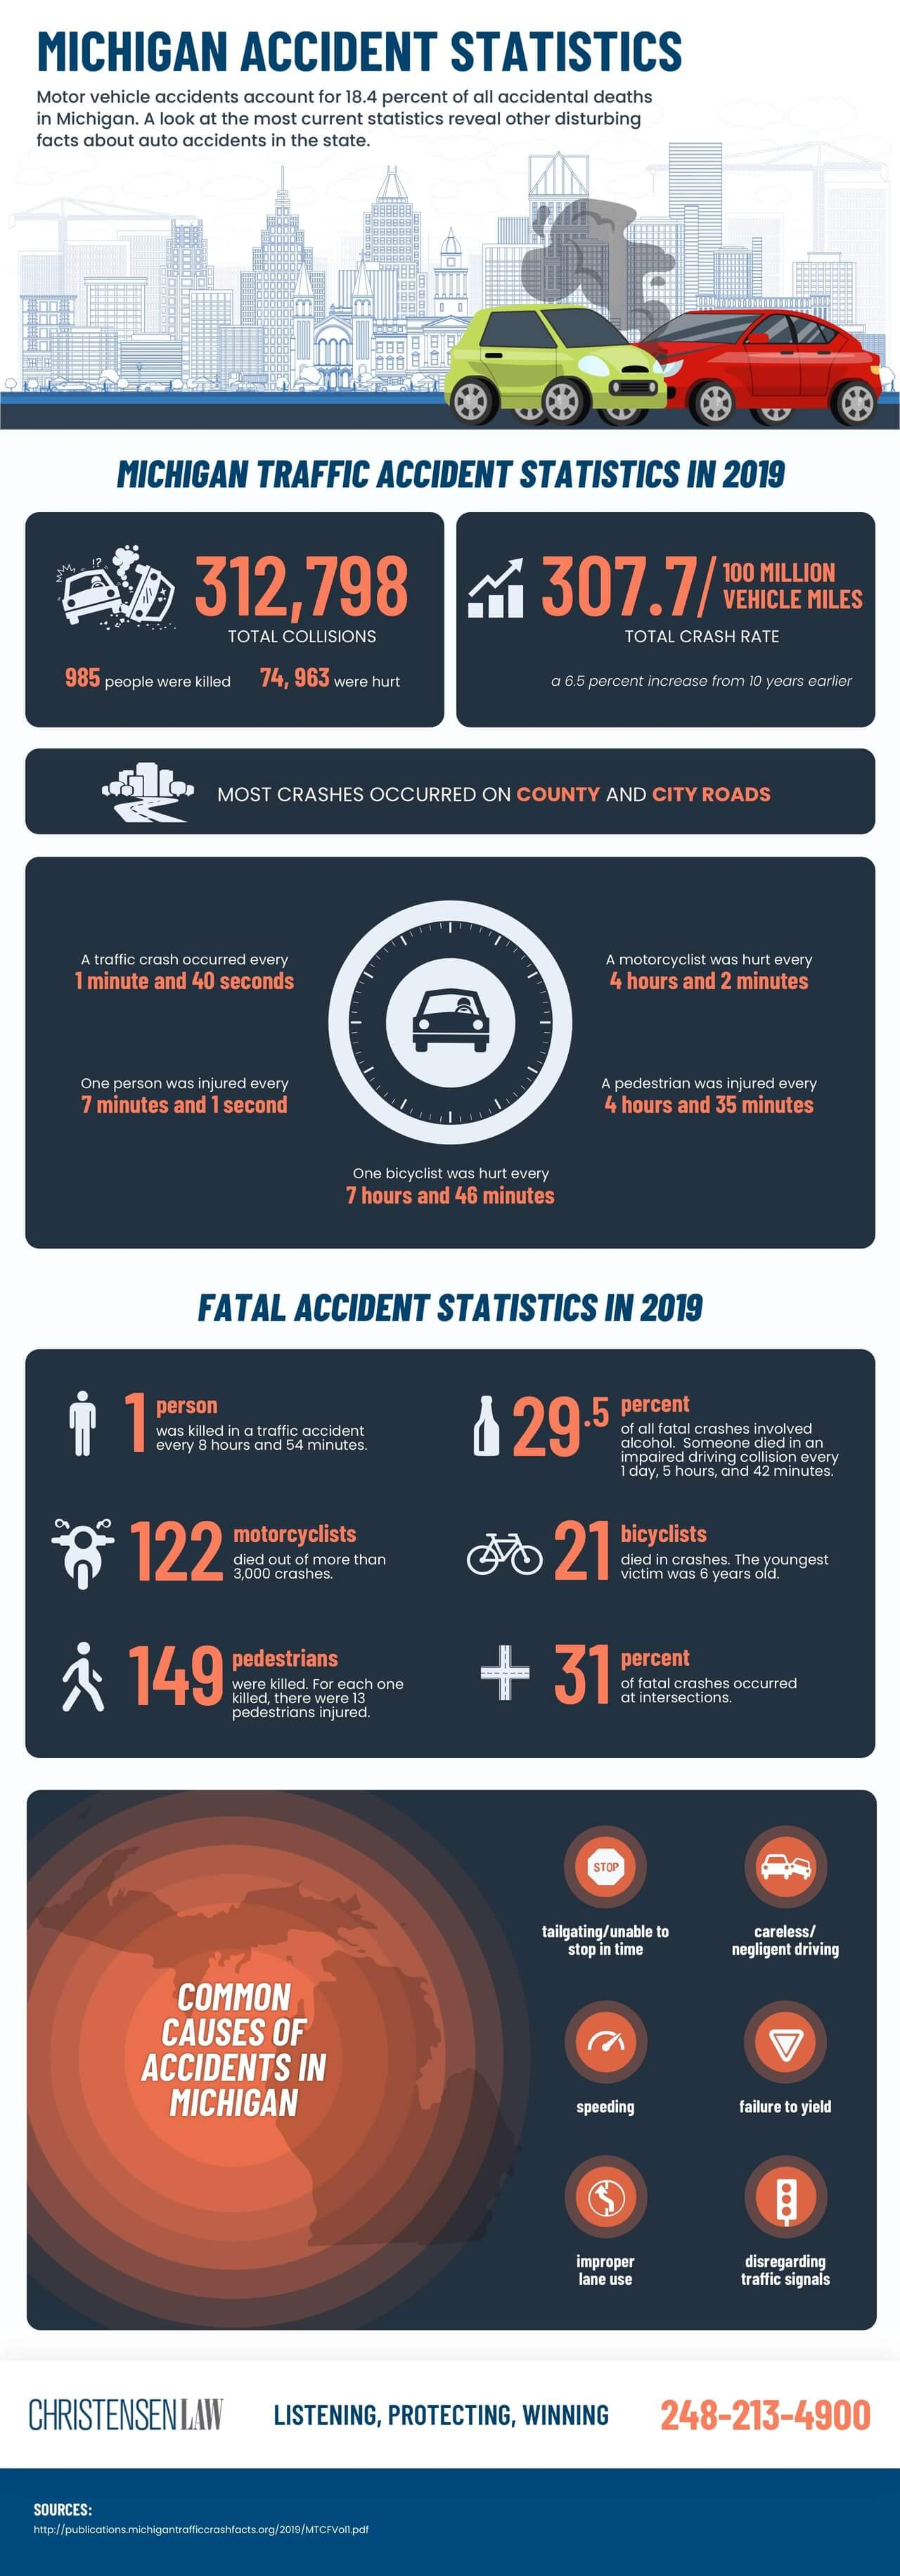 Michigan Accident Statistics - Christensen Law